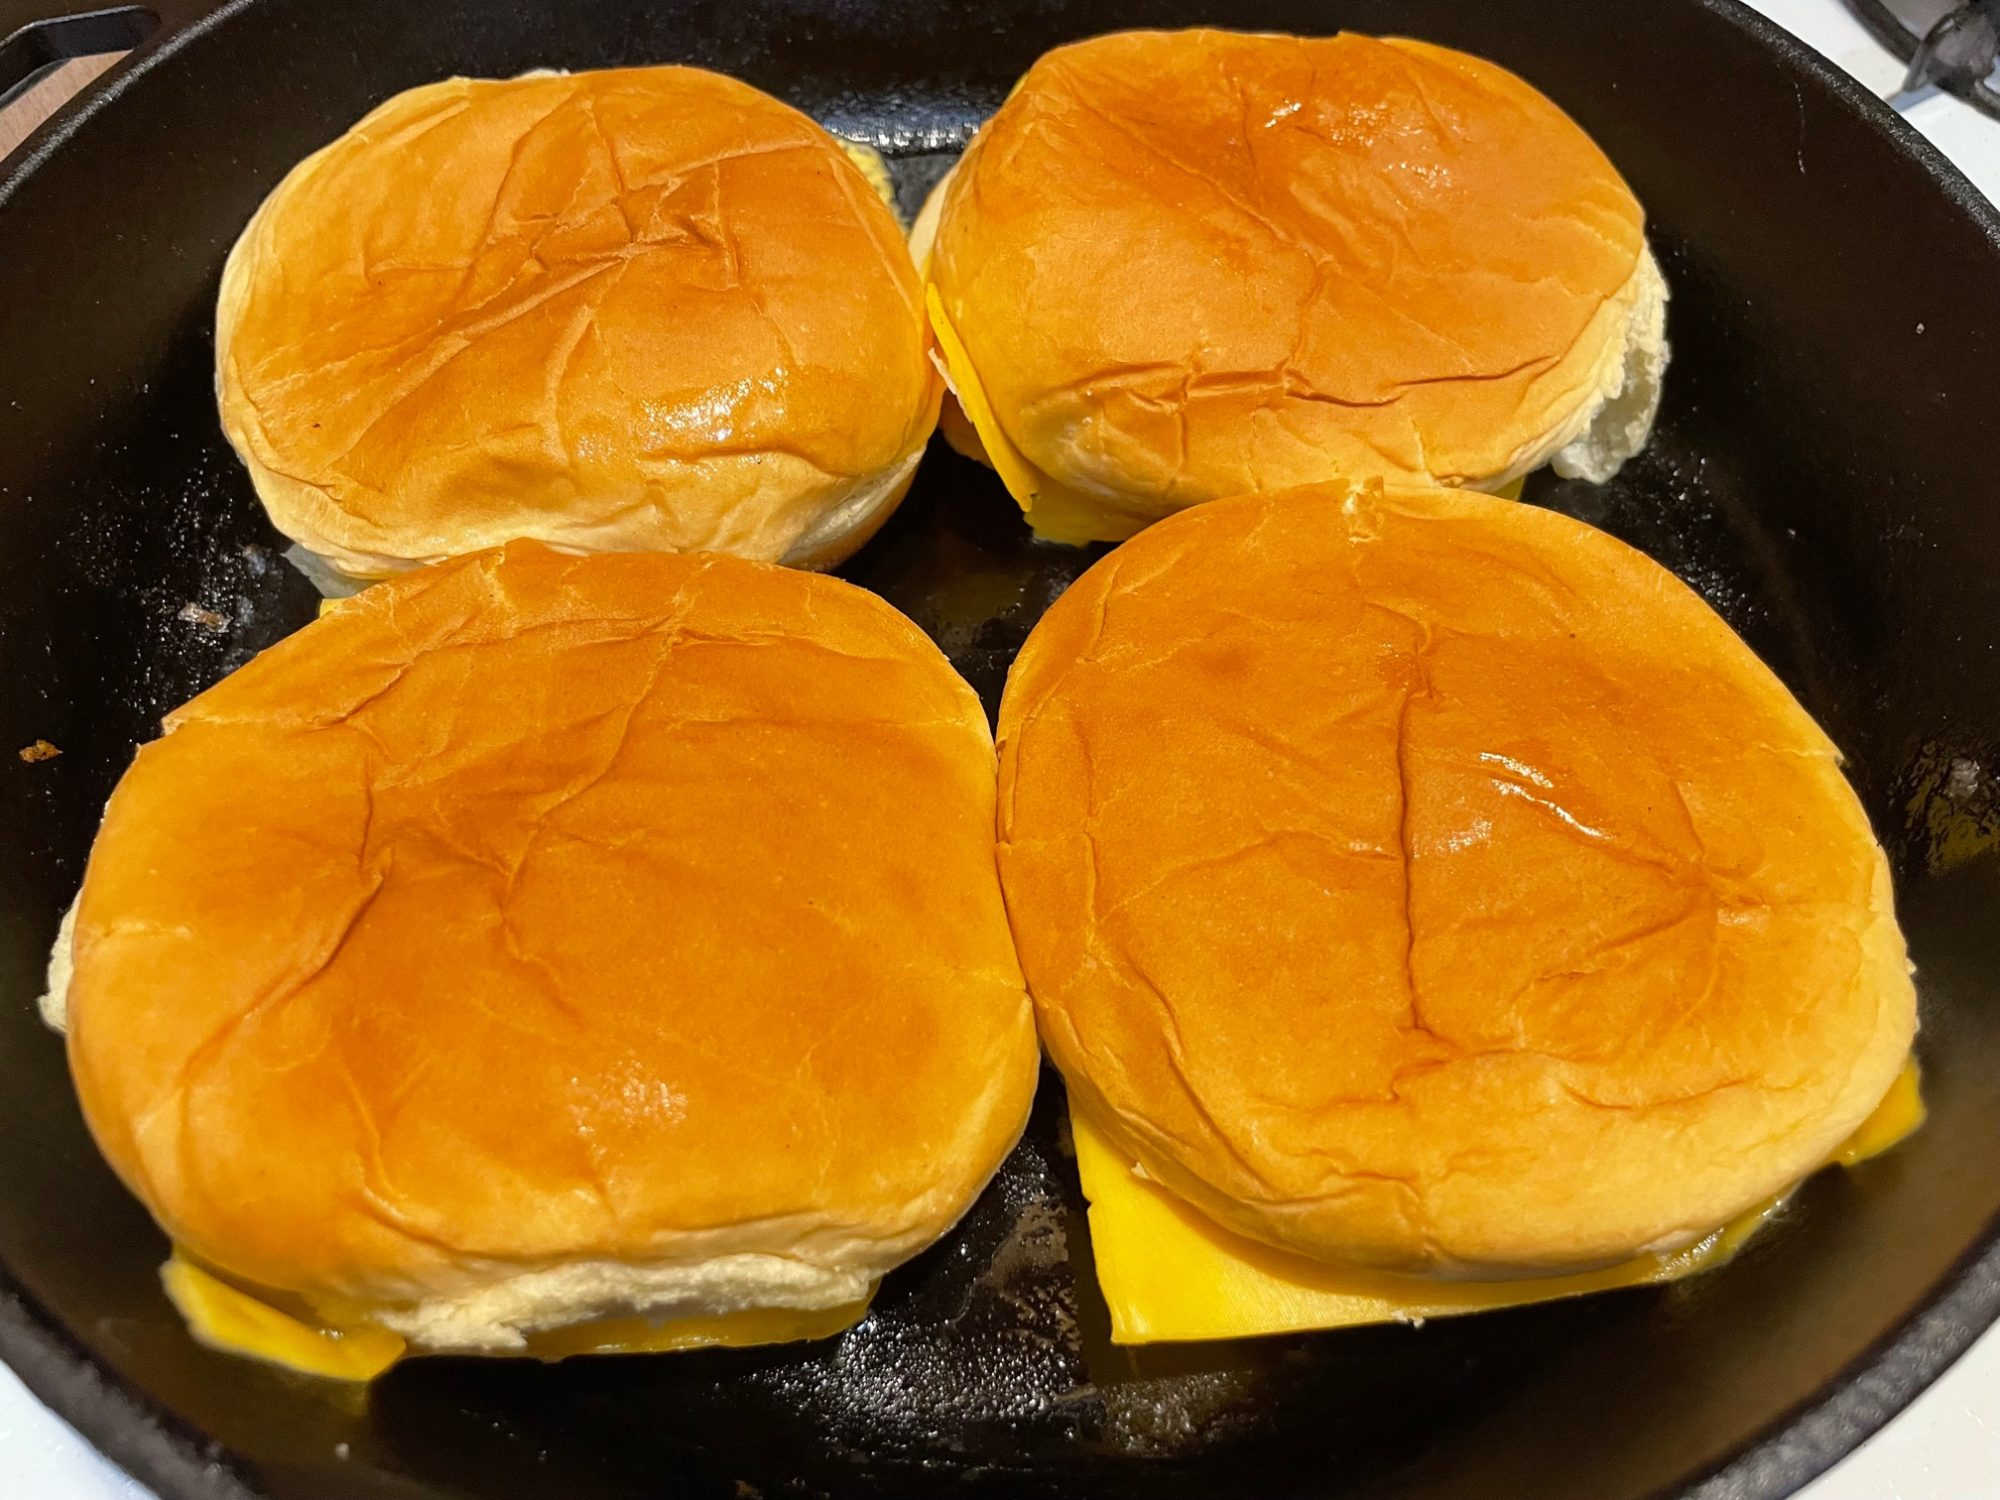 the buns in the pan before cooking